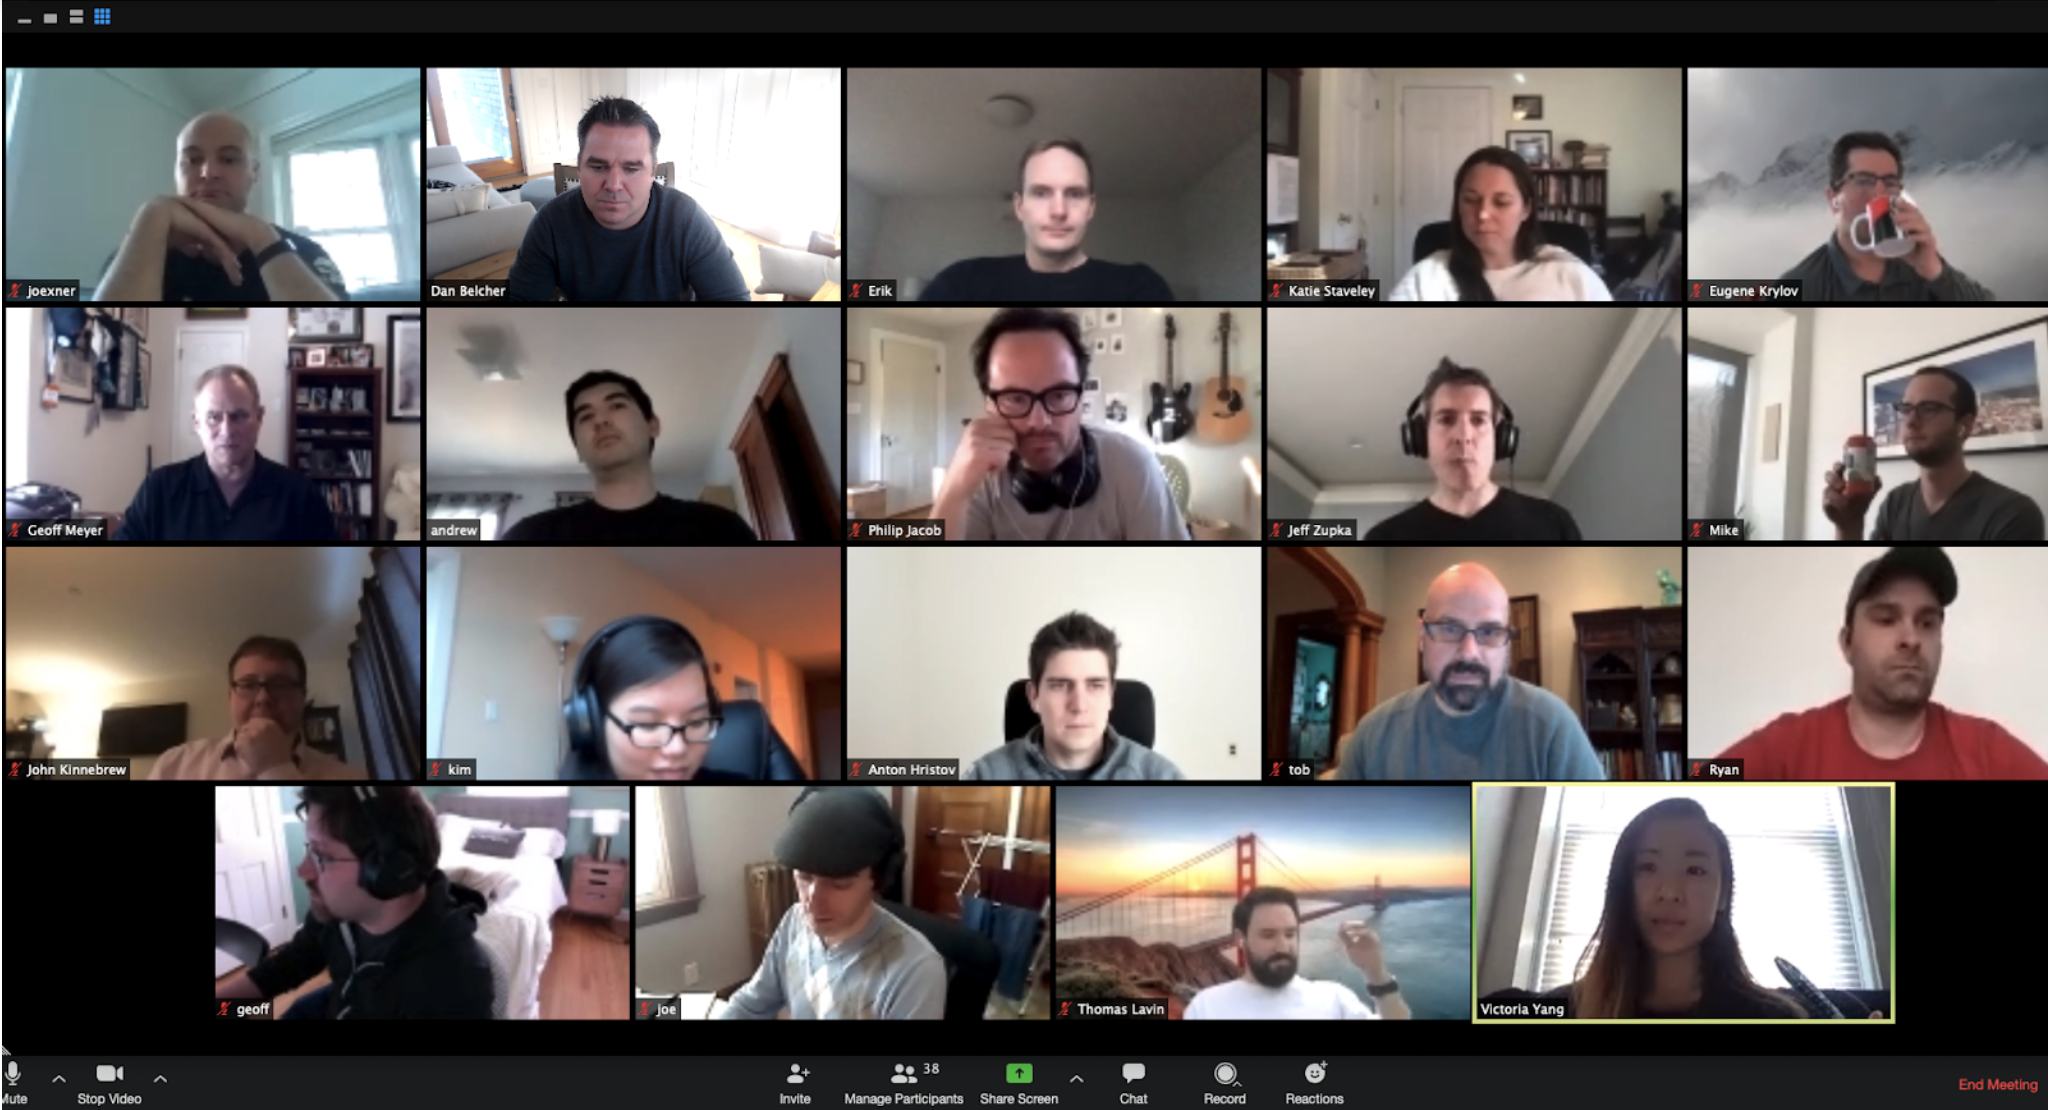 Demo TimeA Zoom meeting showing 19 participants.